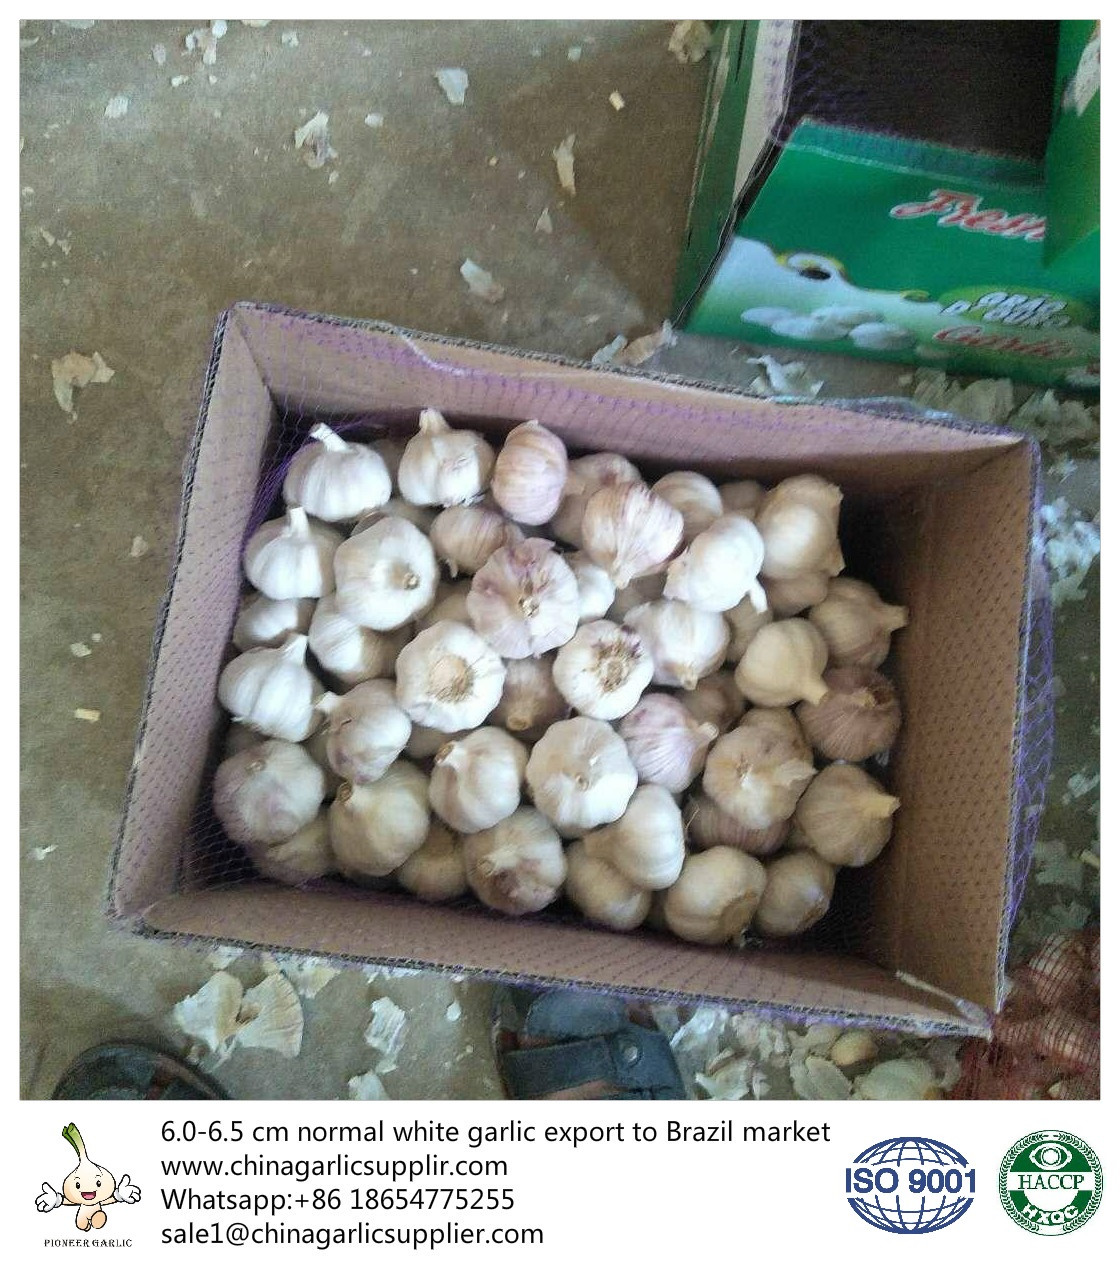 Garlic export to Brazil increased heavy